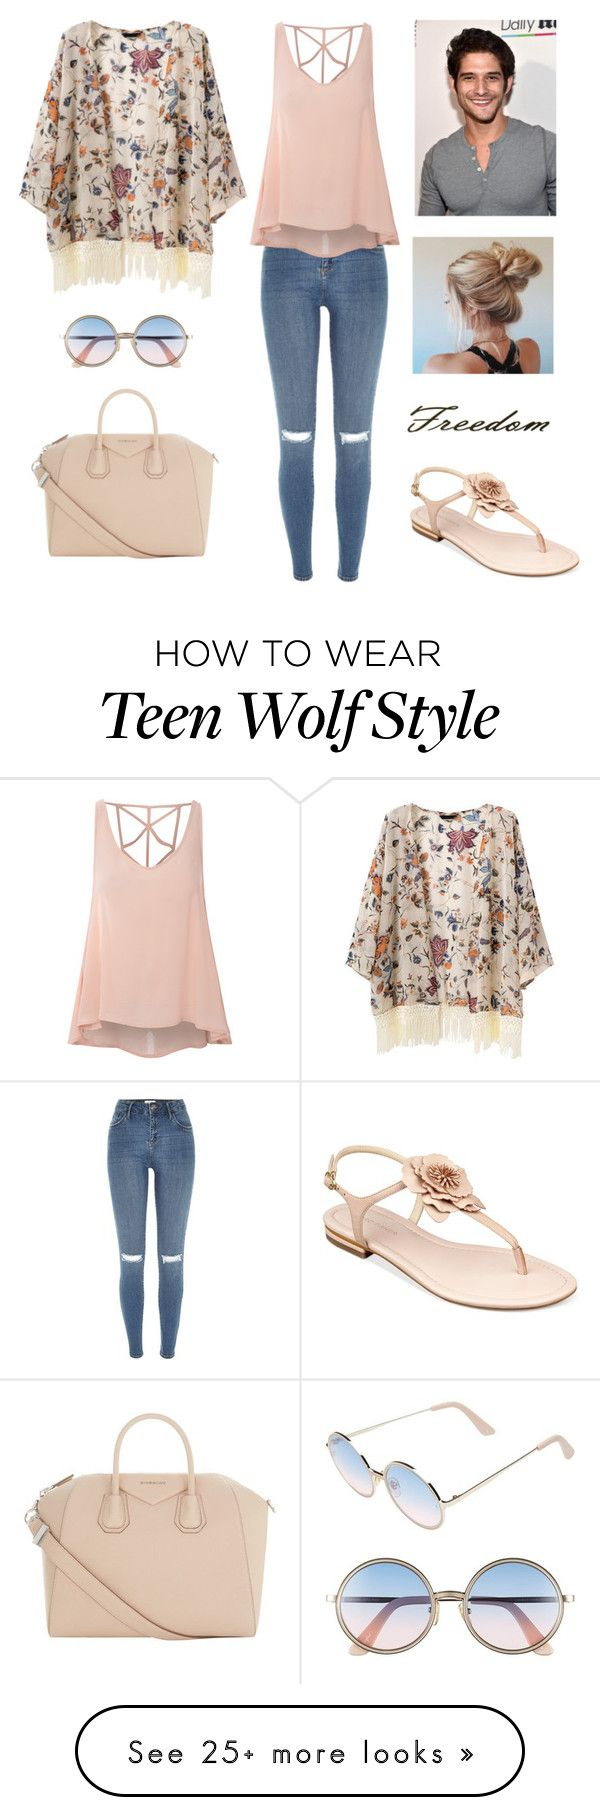 """Day out with Tyler Posey"" by adrianagallas on Polyvore featuring Givenchy, Sunday Somewhere, River Island, Glamorous and Marc Fisher"